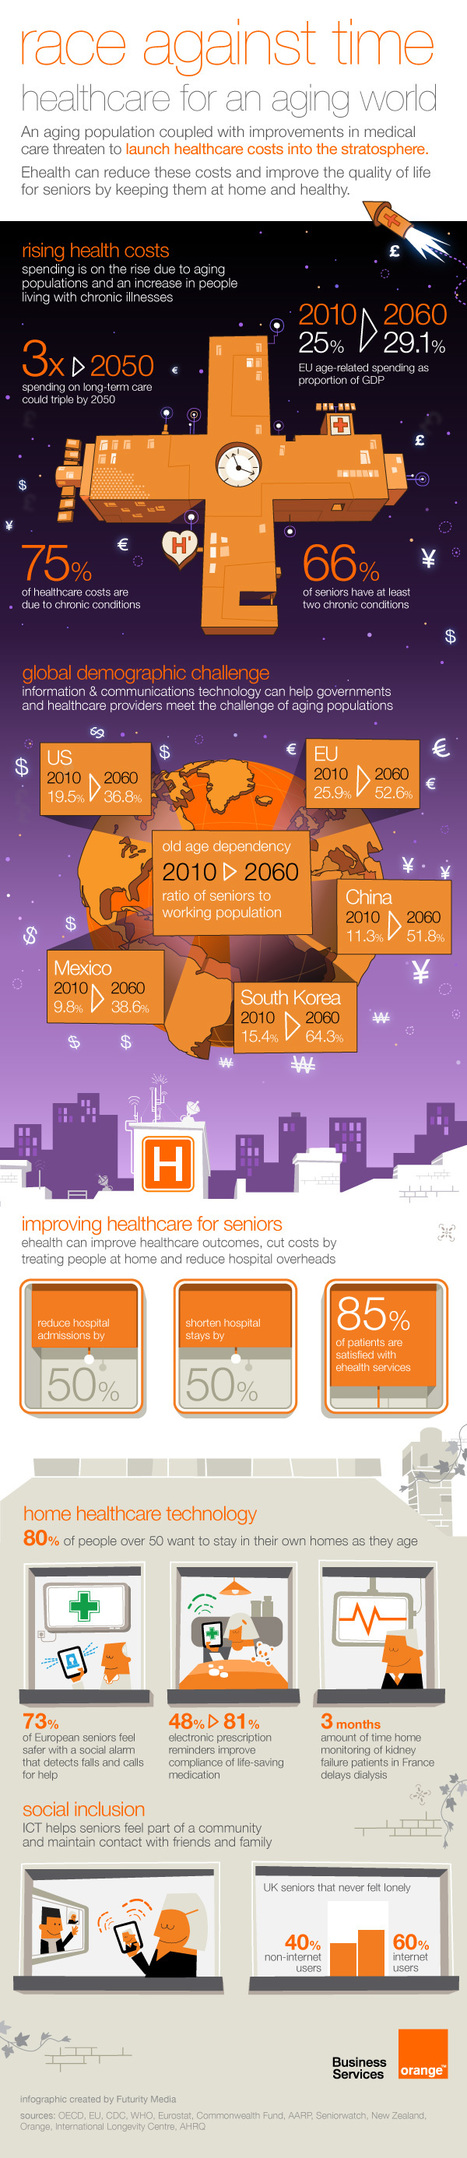 Orange Healthcare - ehealth for an aging world | le monde de la e-santé | Scoop.it